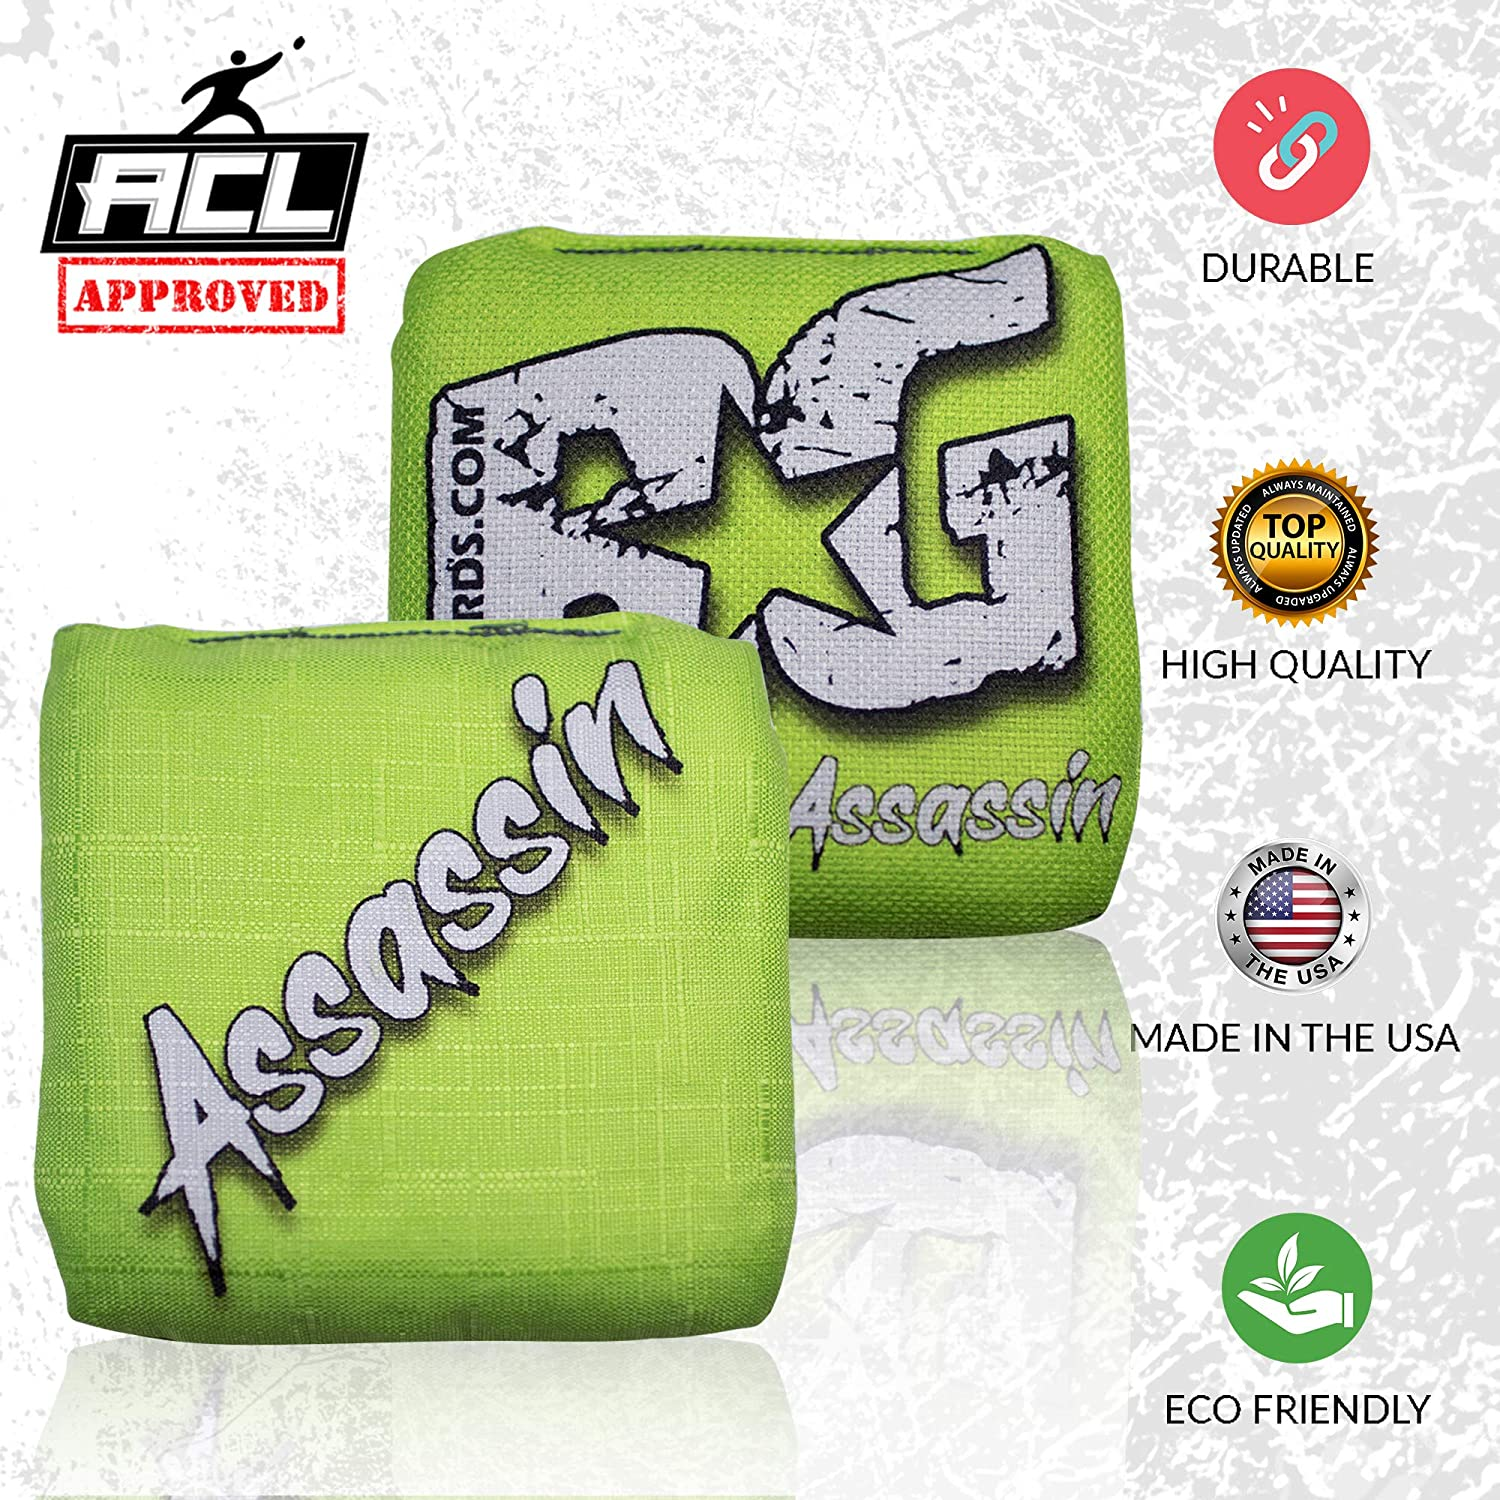 Double Sided Made in USA Set of 4 Bags- ACL Approved BG Bags Cornhole Eco Friendly Resin Filled Assassin Series